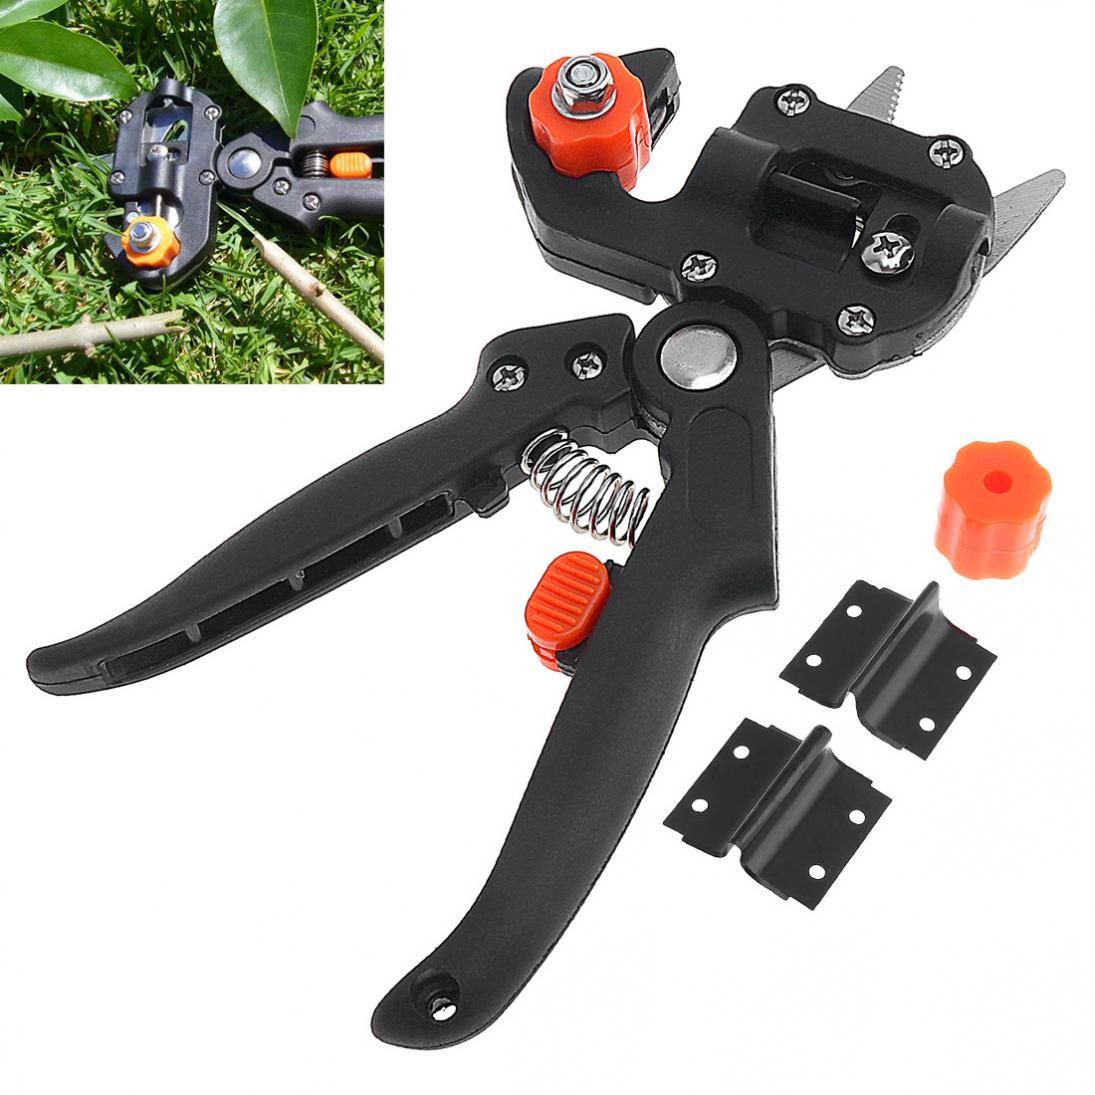 Professional Handle Pruning Shears Grafting Cutting Tool with Replace Parts for Garden Fruit Tree professional handle pruning shears grafting cutting tool with replace parts for garden fruit tree